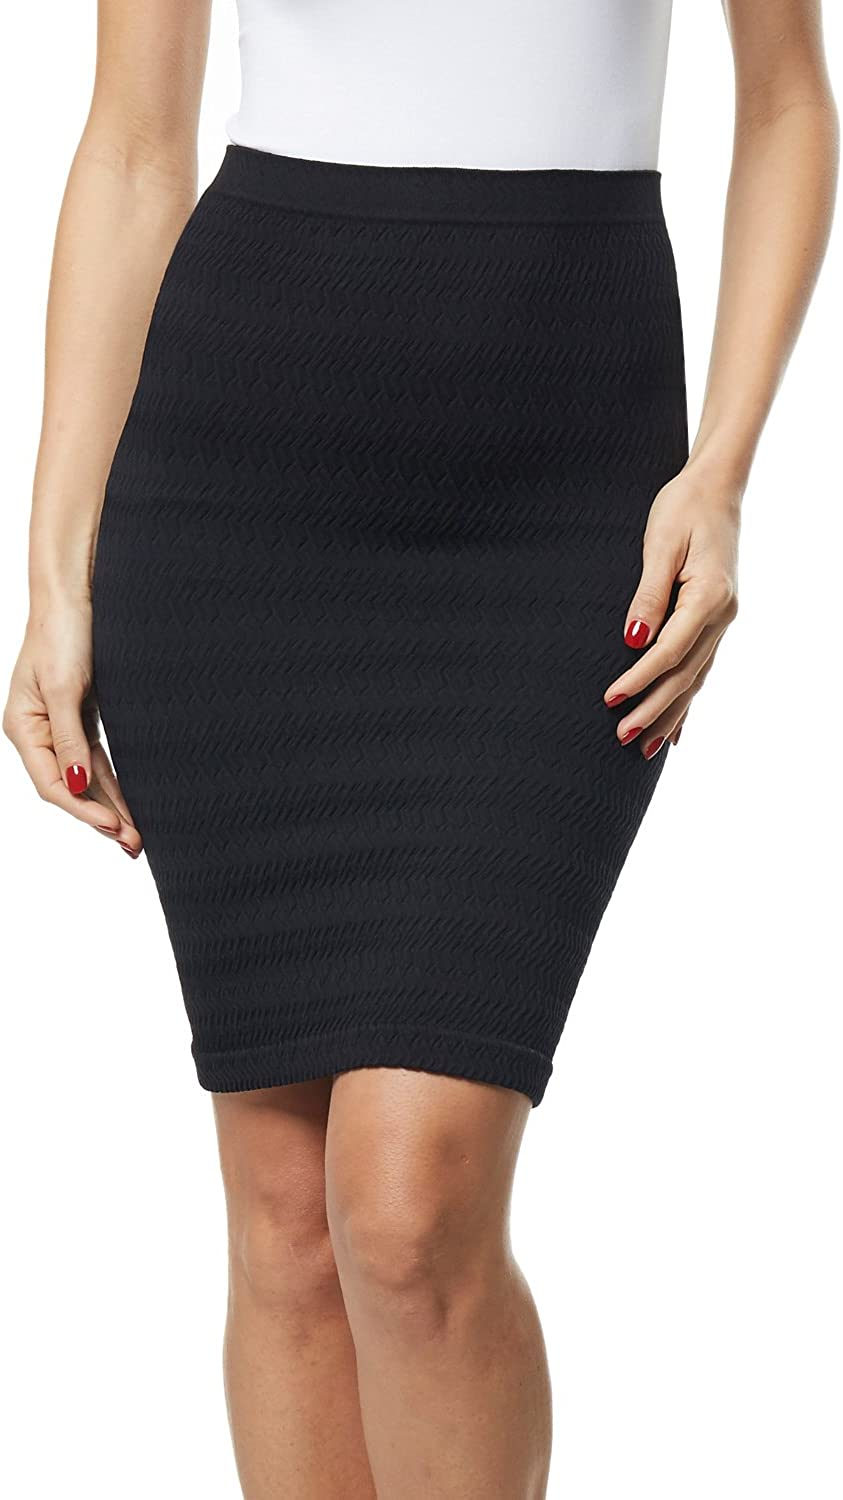 Beilini Women's Office Skirt Stretch Midi Short Fit Solid Pencil Skirt